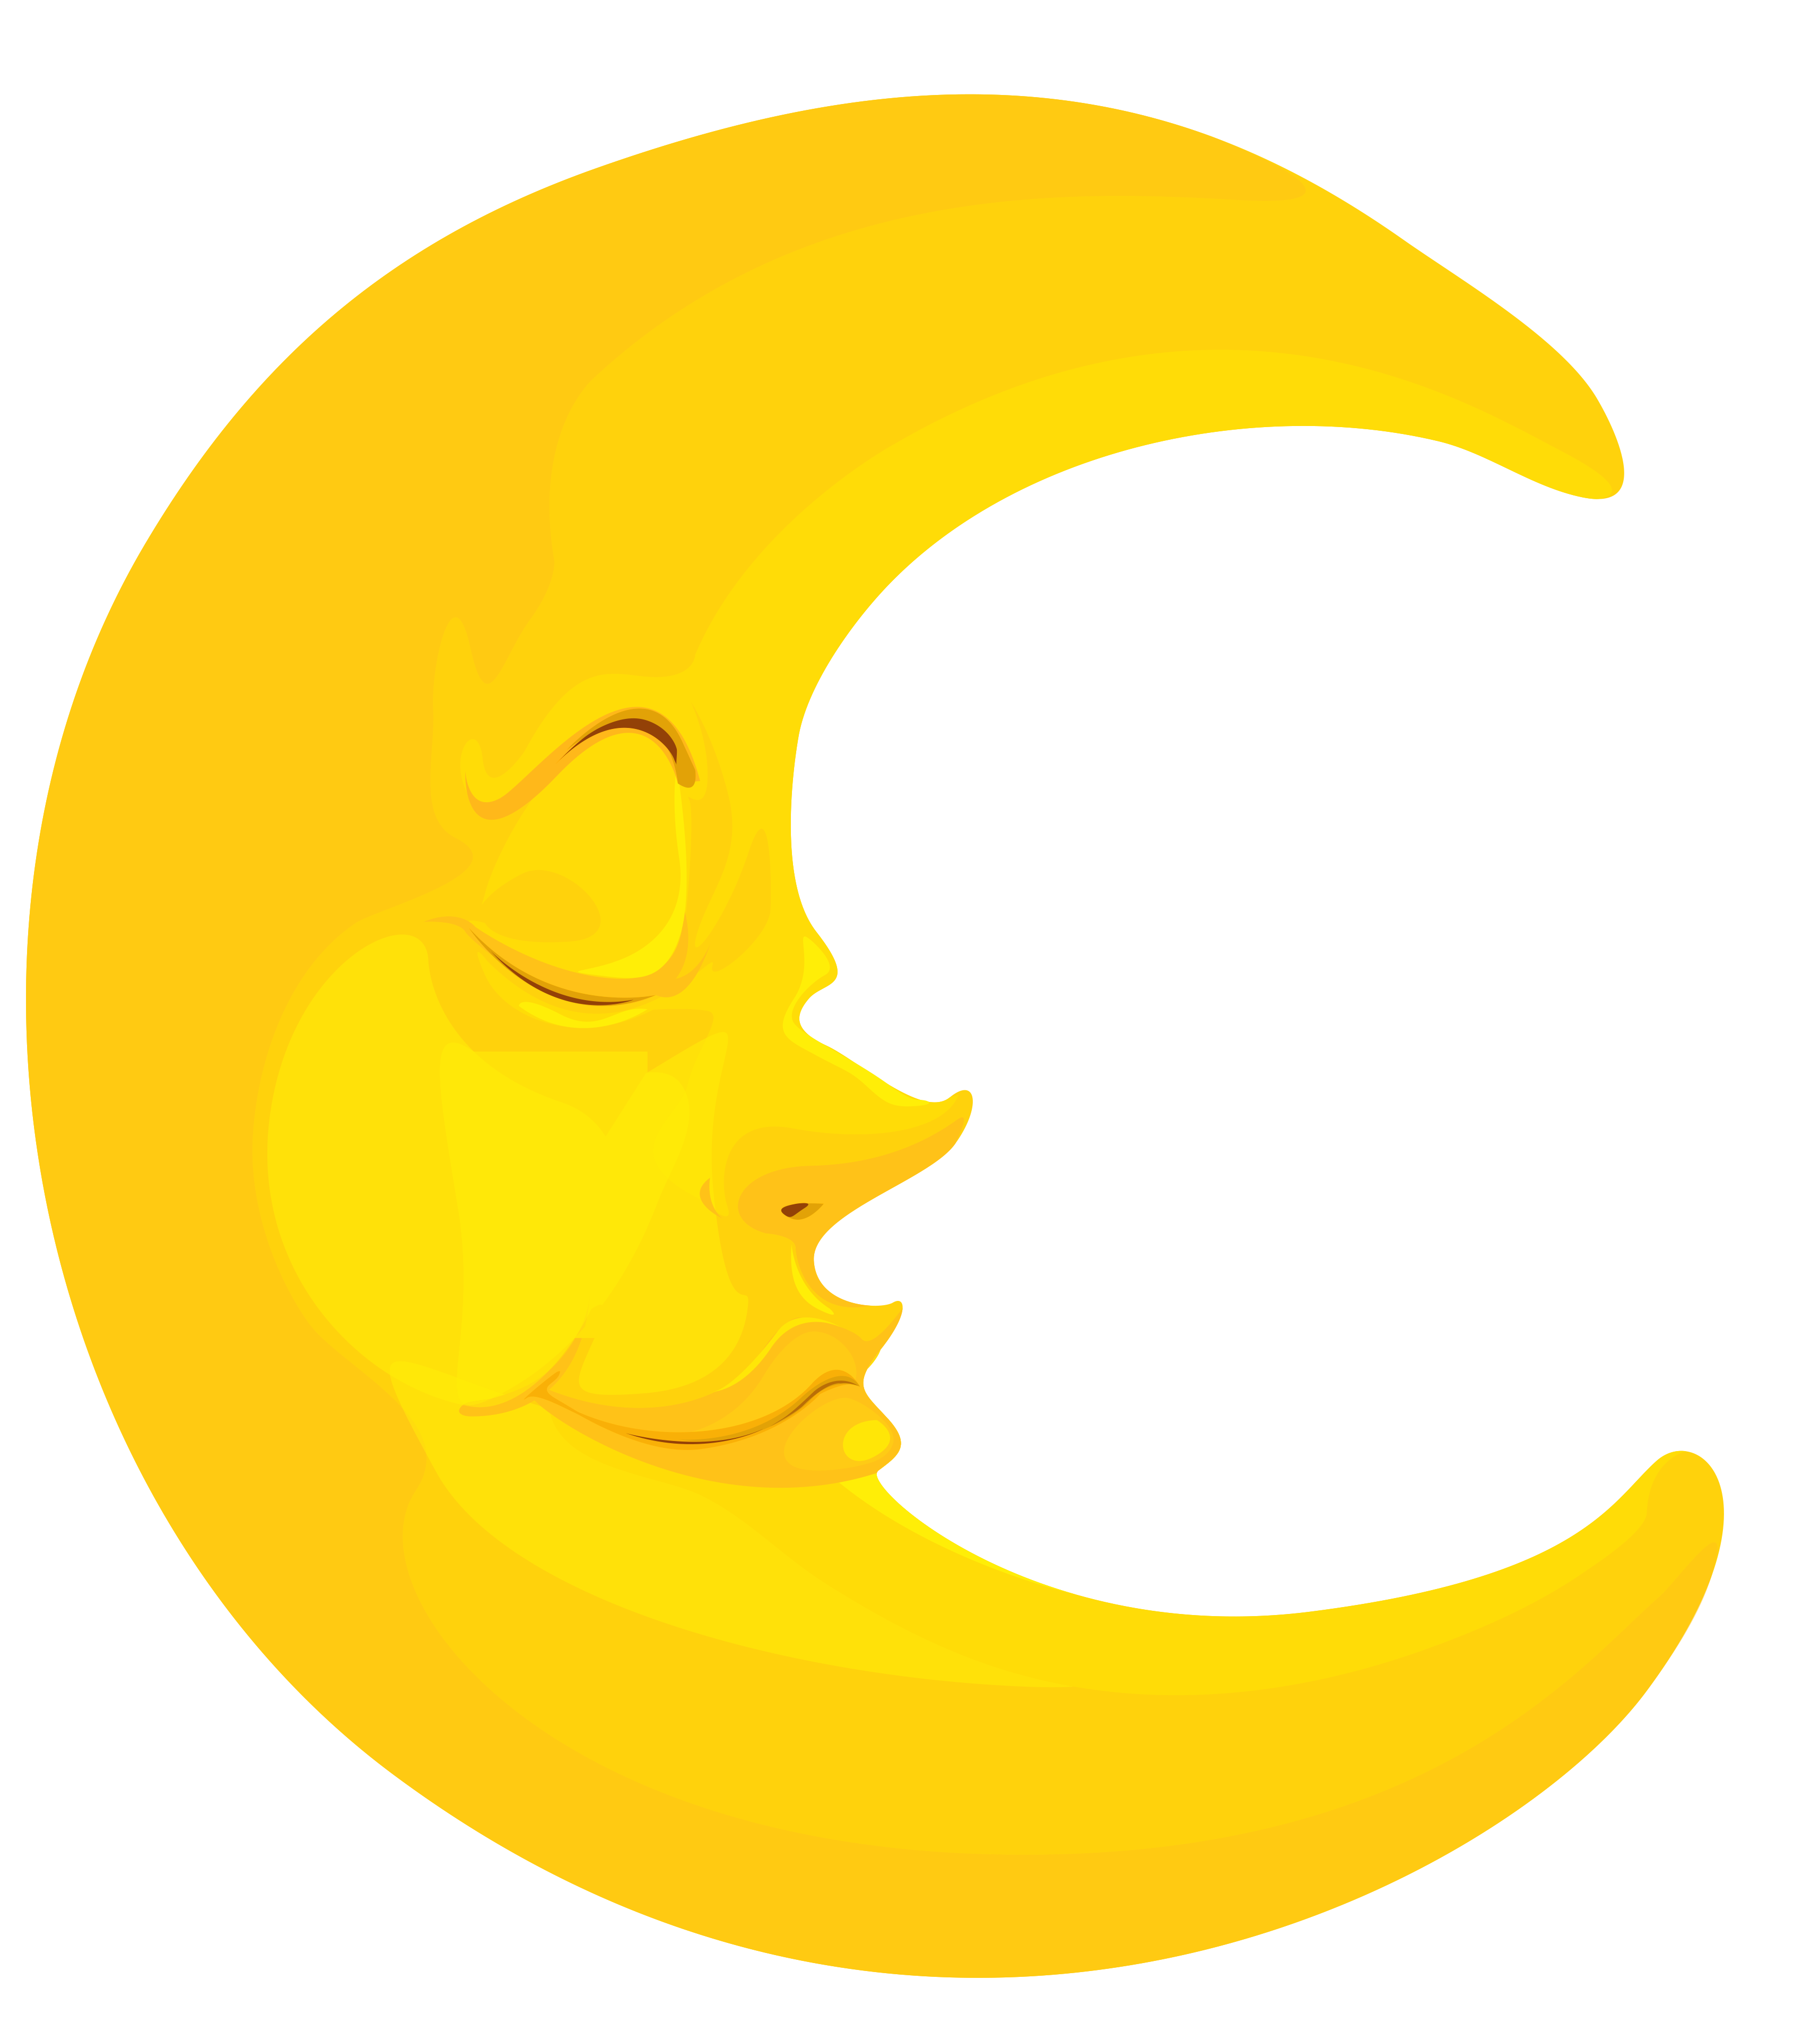 Moon clipart #4, Download drawings